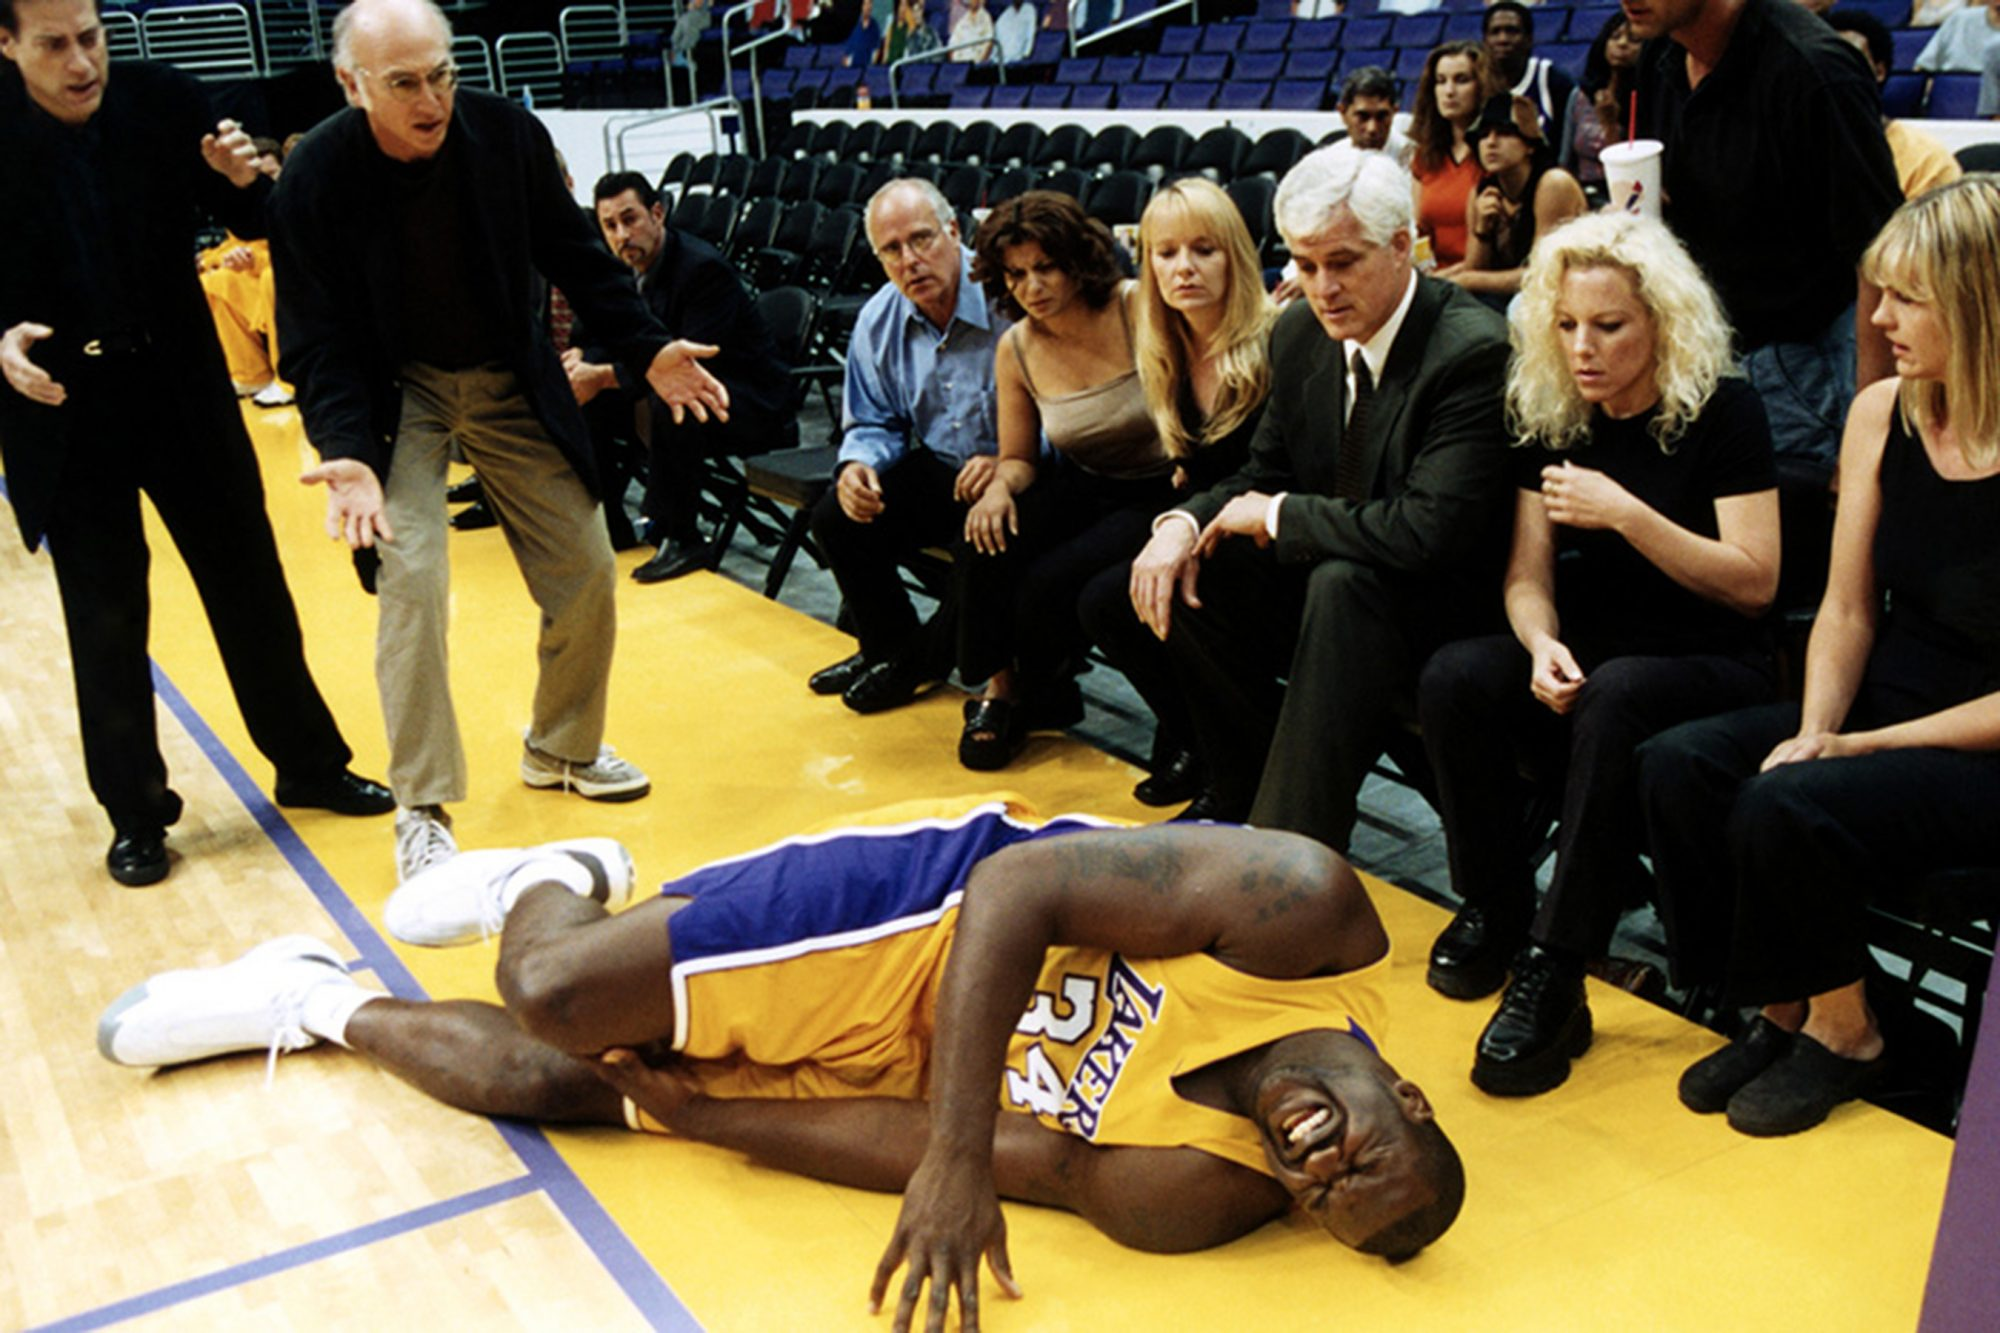 20. Shaquille O'Neal